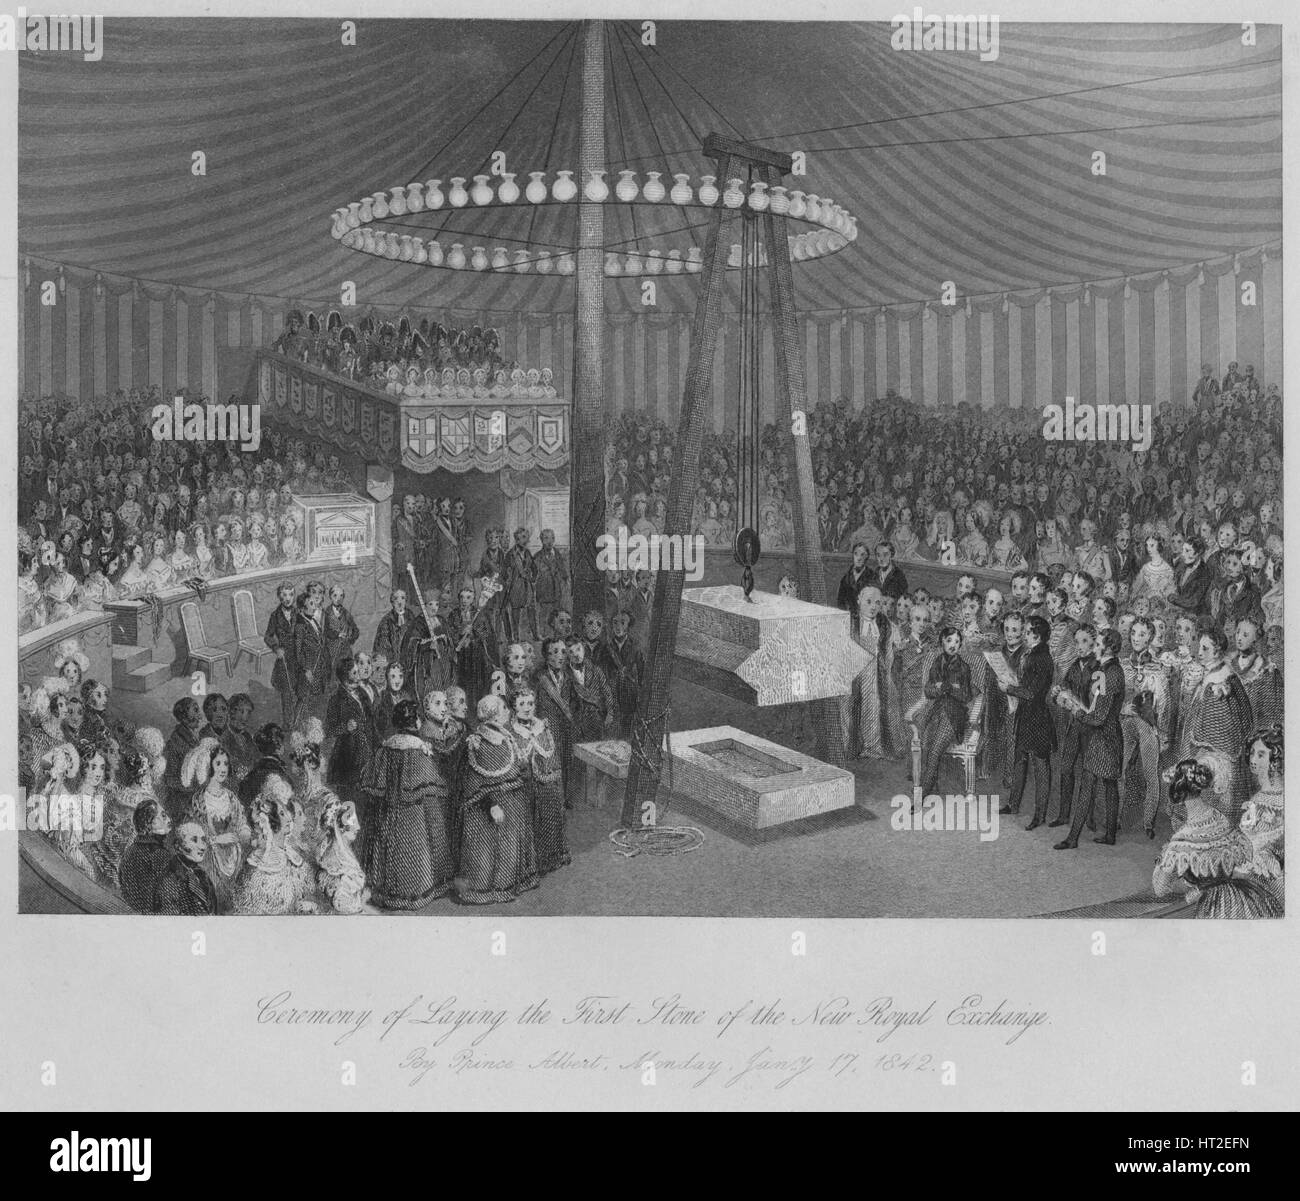 'Ceremony of Laying the First Stone of the New Royal Exchange', c1842. Artist: Henry Melville. - Stock Image